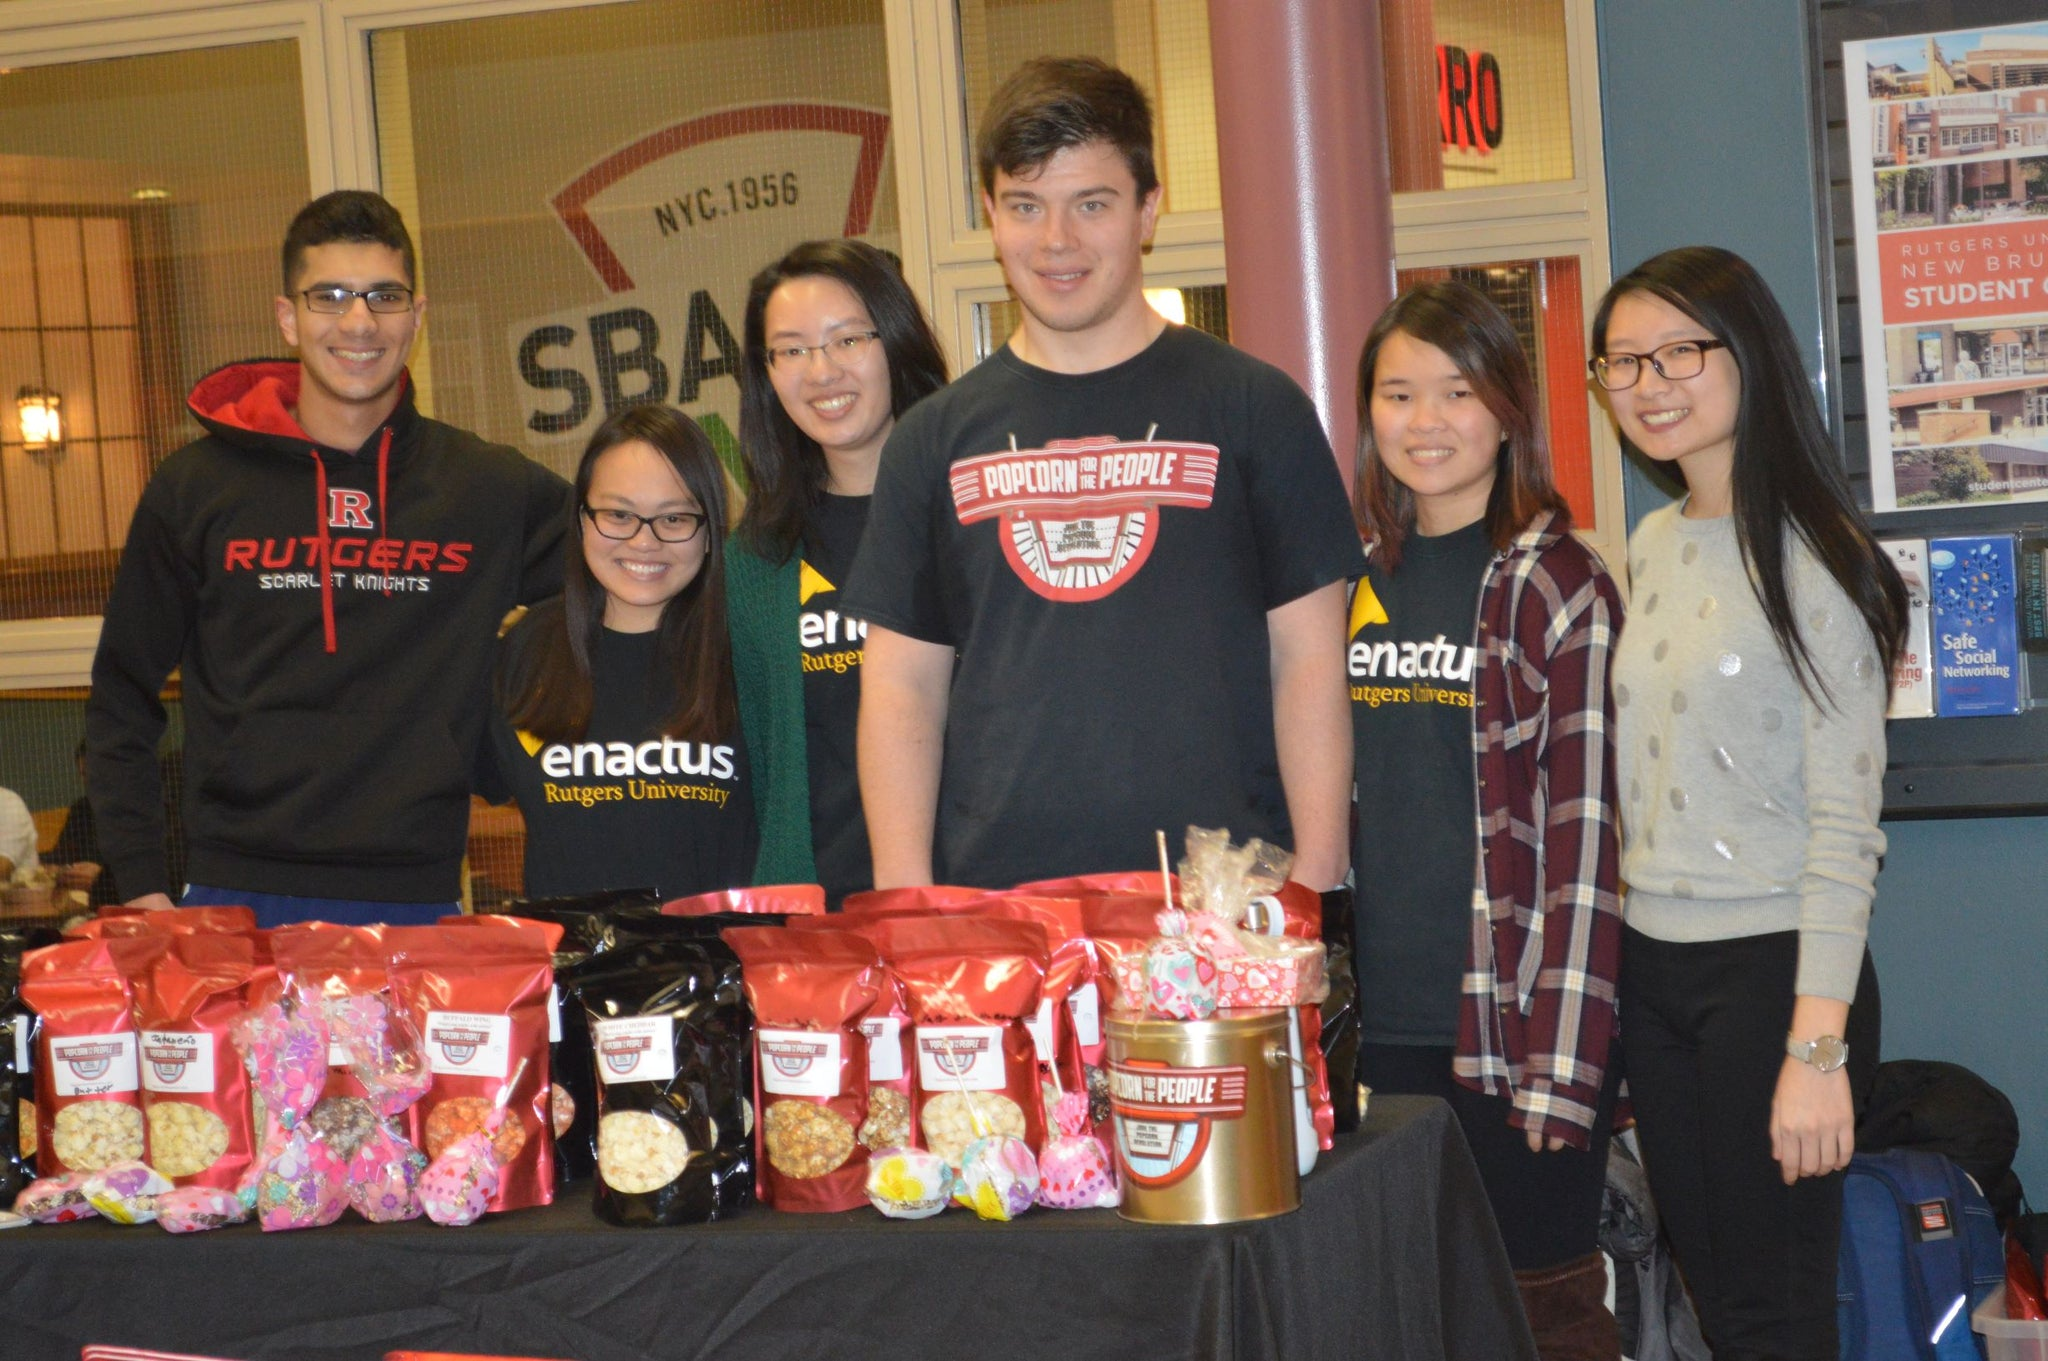 Popcorn for the People partners with Rutgers Enactus to create sustainable autism employment